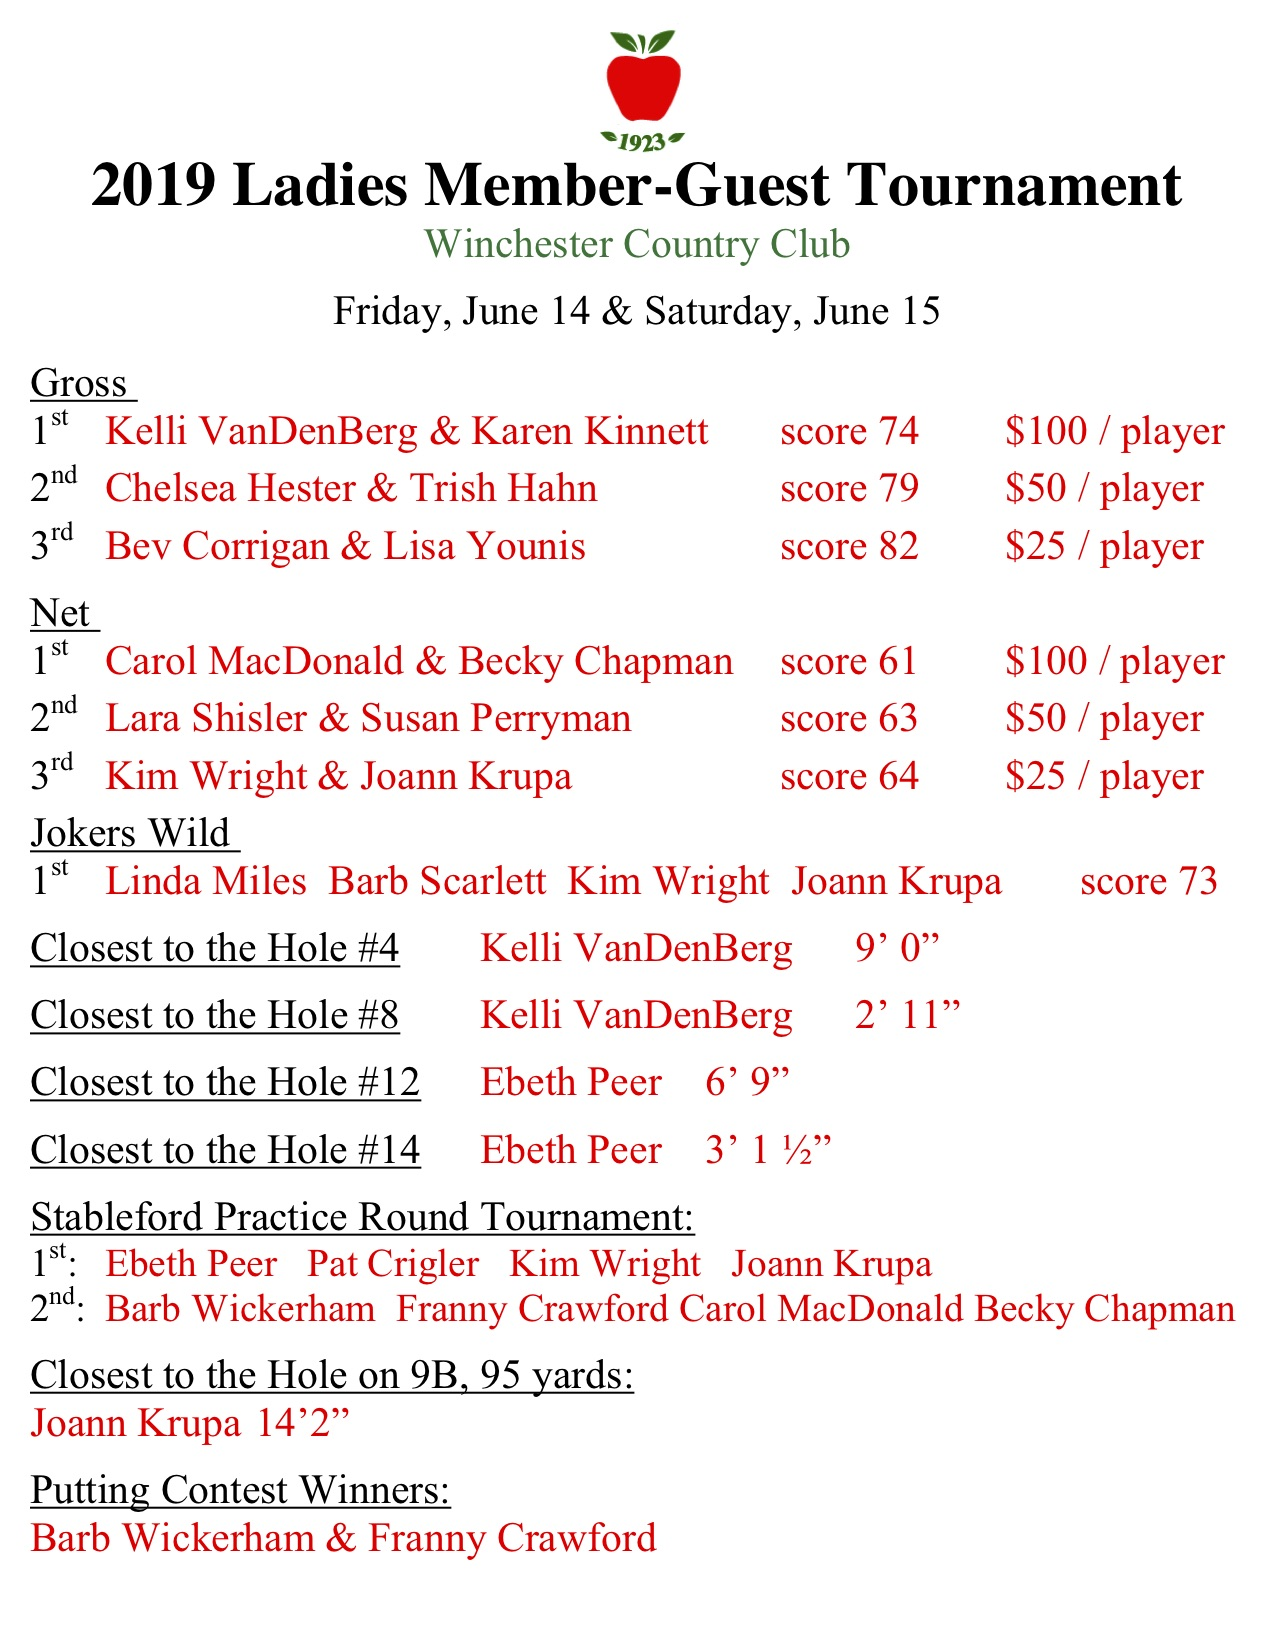 2019 ladies member guest results.jpg